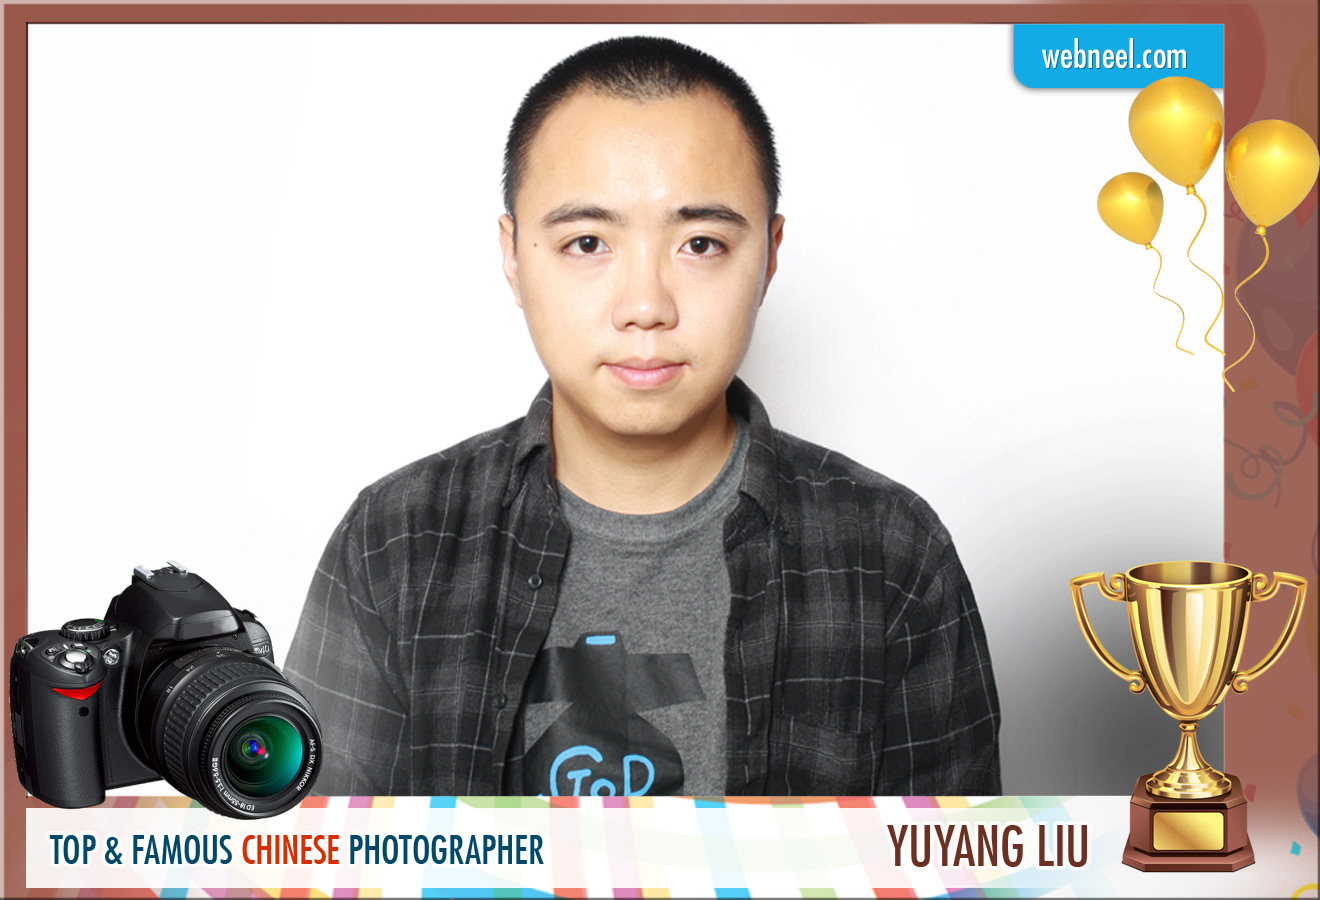 famous chinese photographer yuyang liu